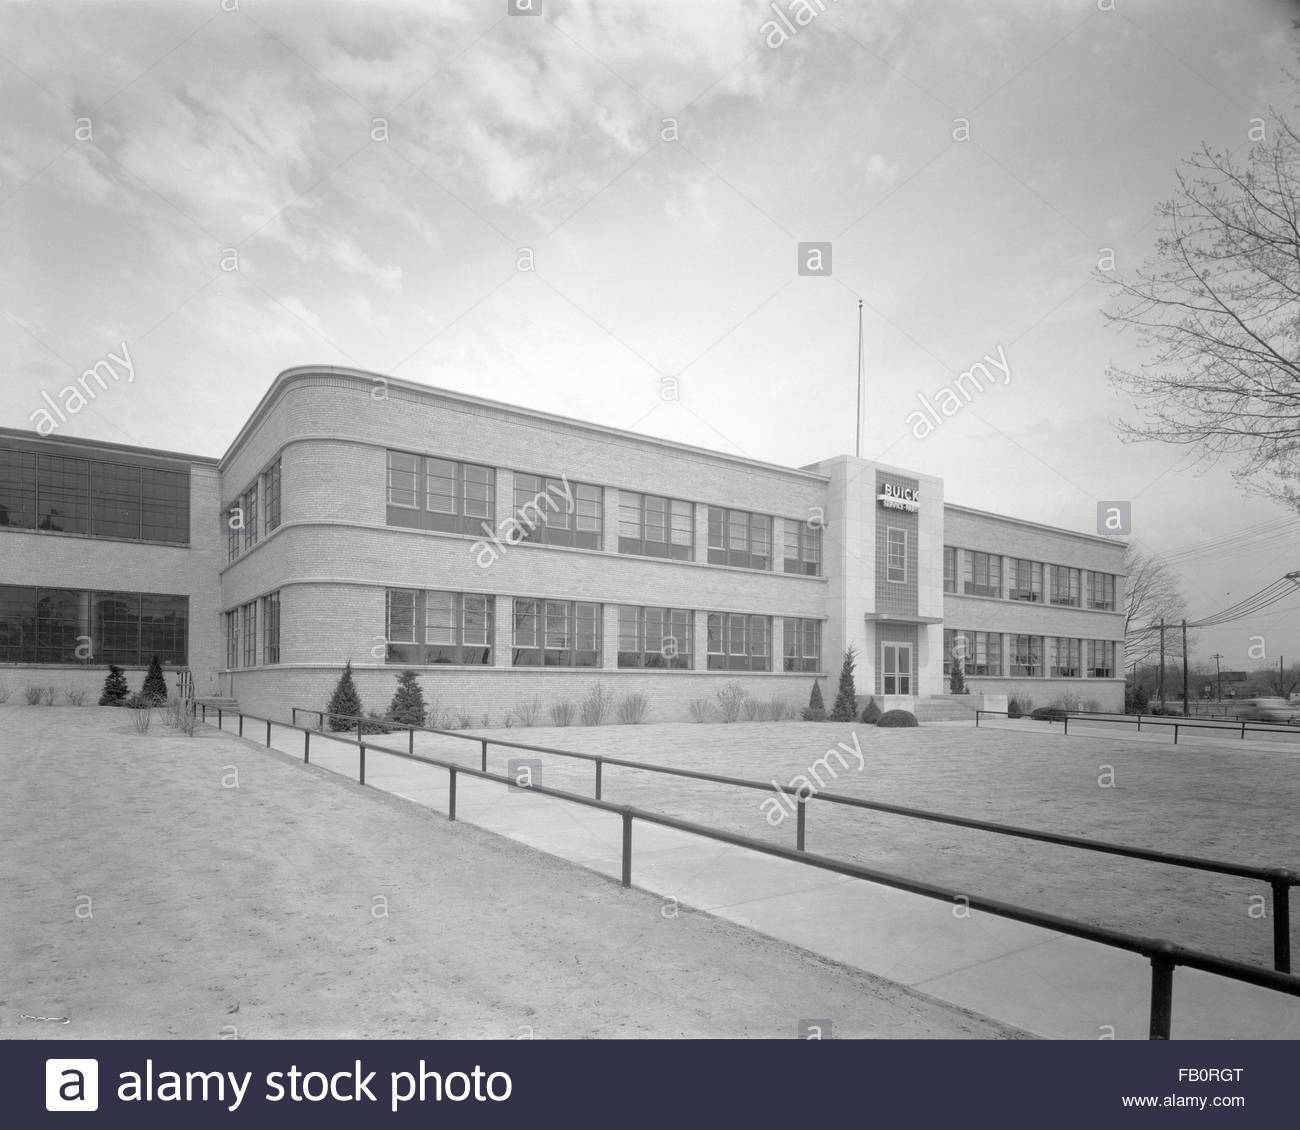 Buick Motor plant in Flint (Mich.), 1939 Dec. 27. Exterior, perspective view. - Stock Image